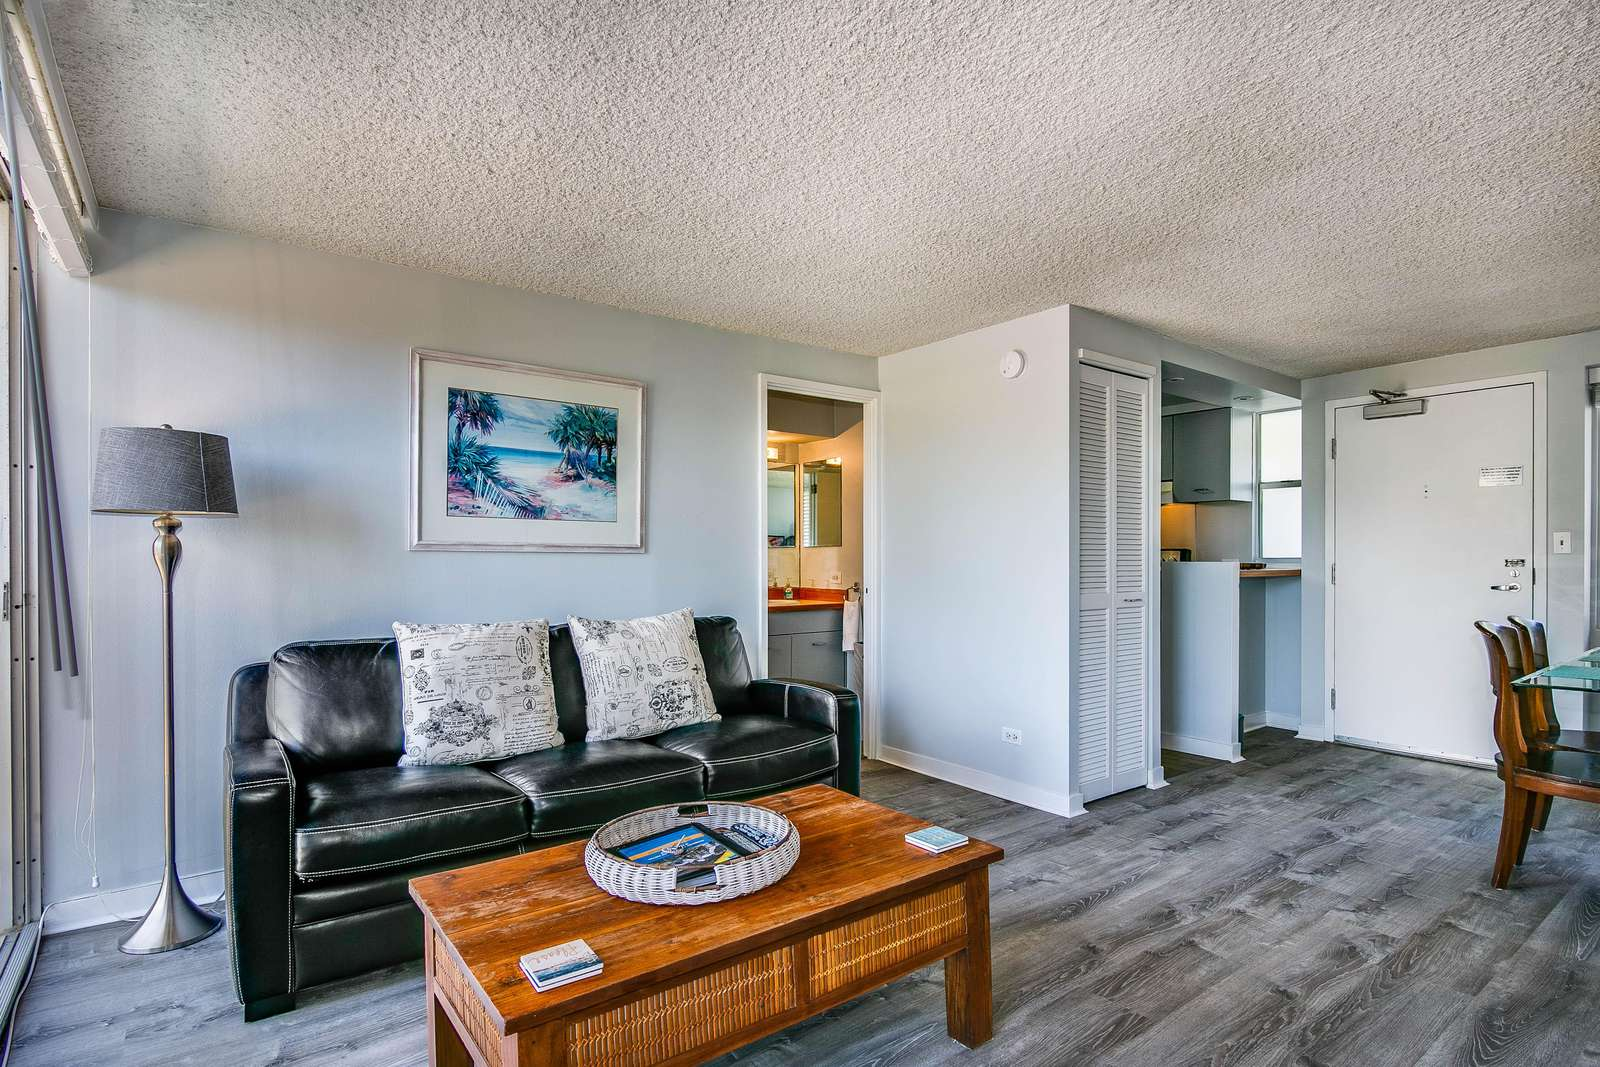 Our neat, modern super clean  and easy to maintain condo awaits you.